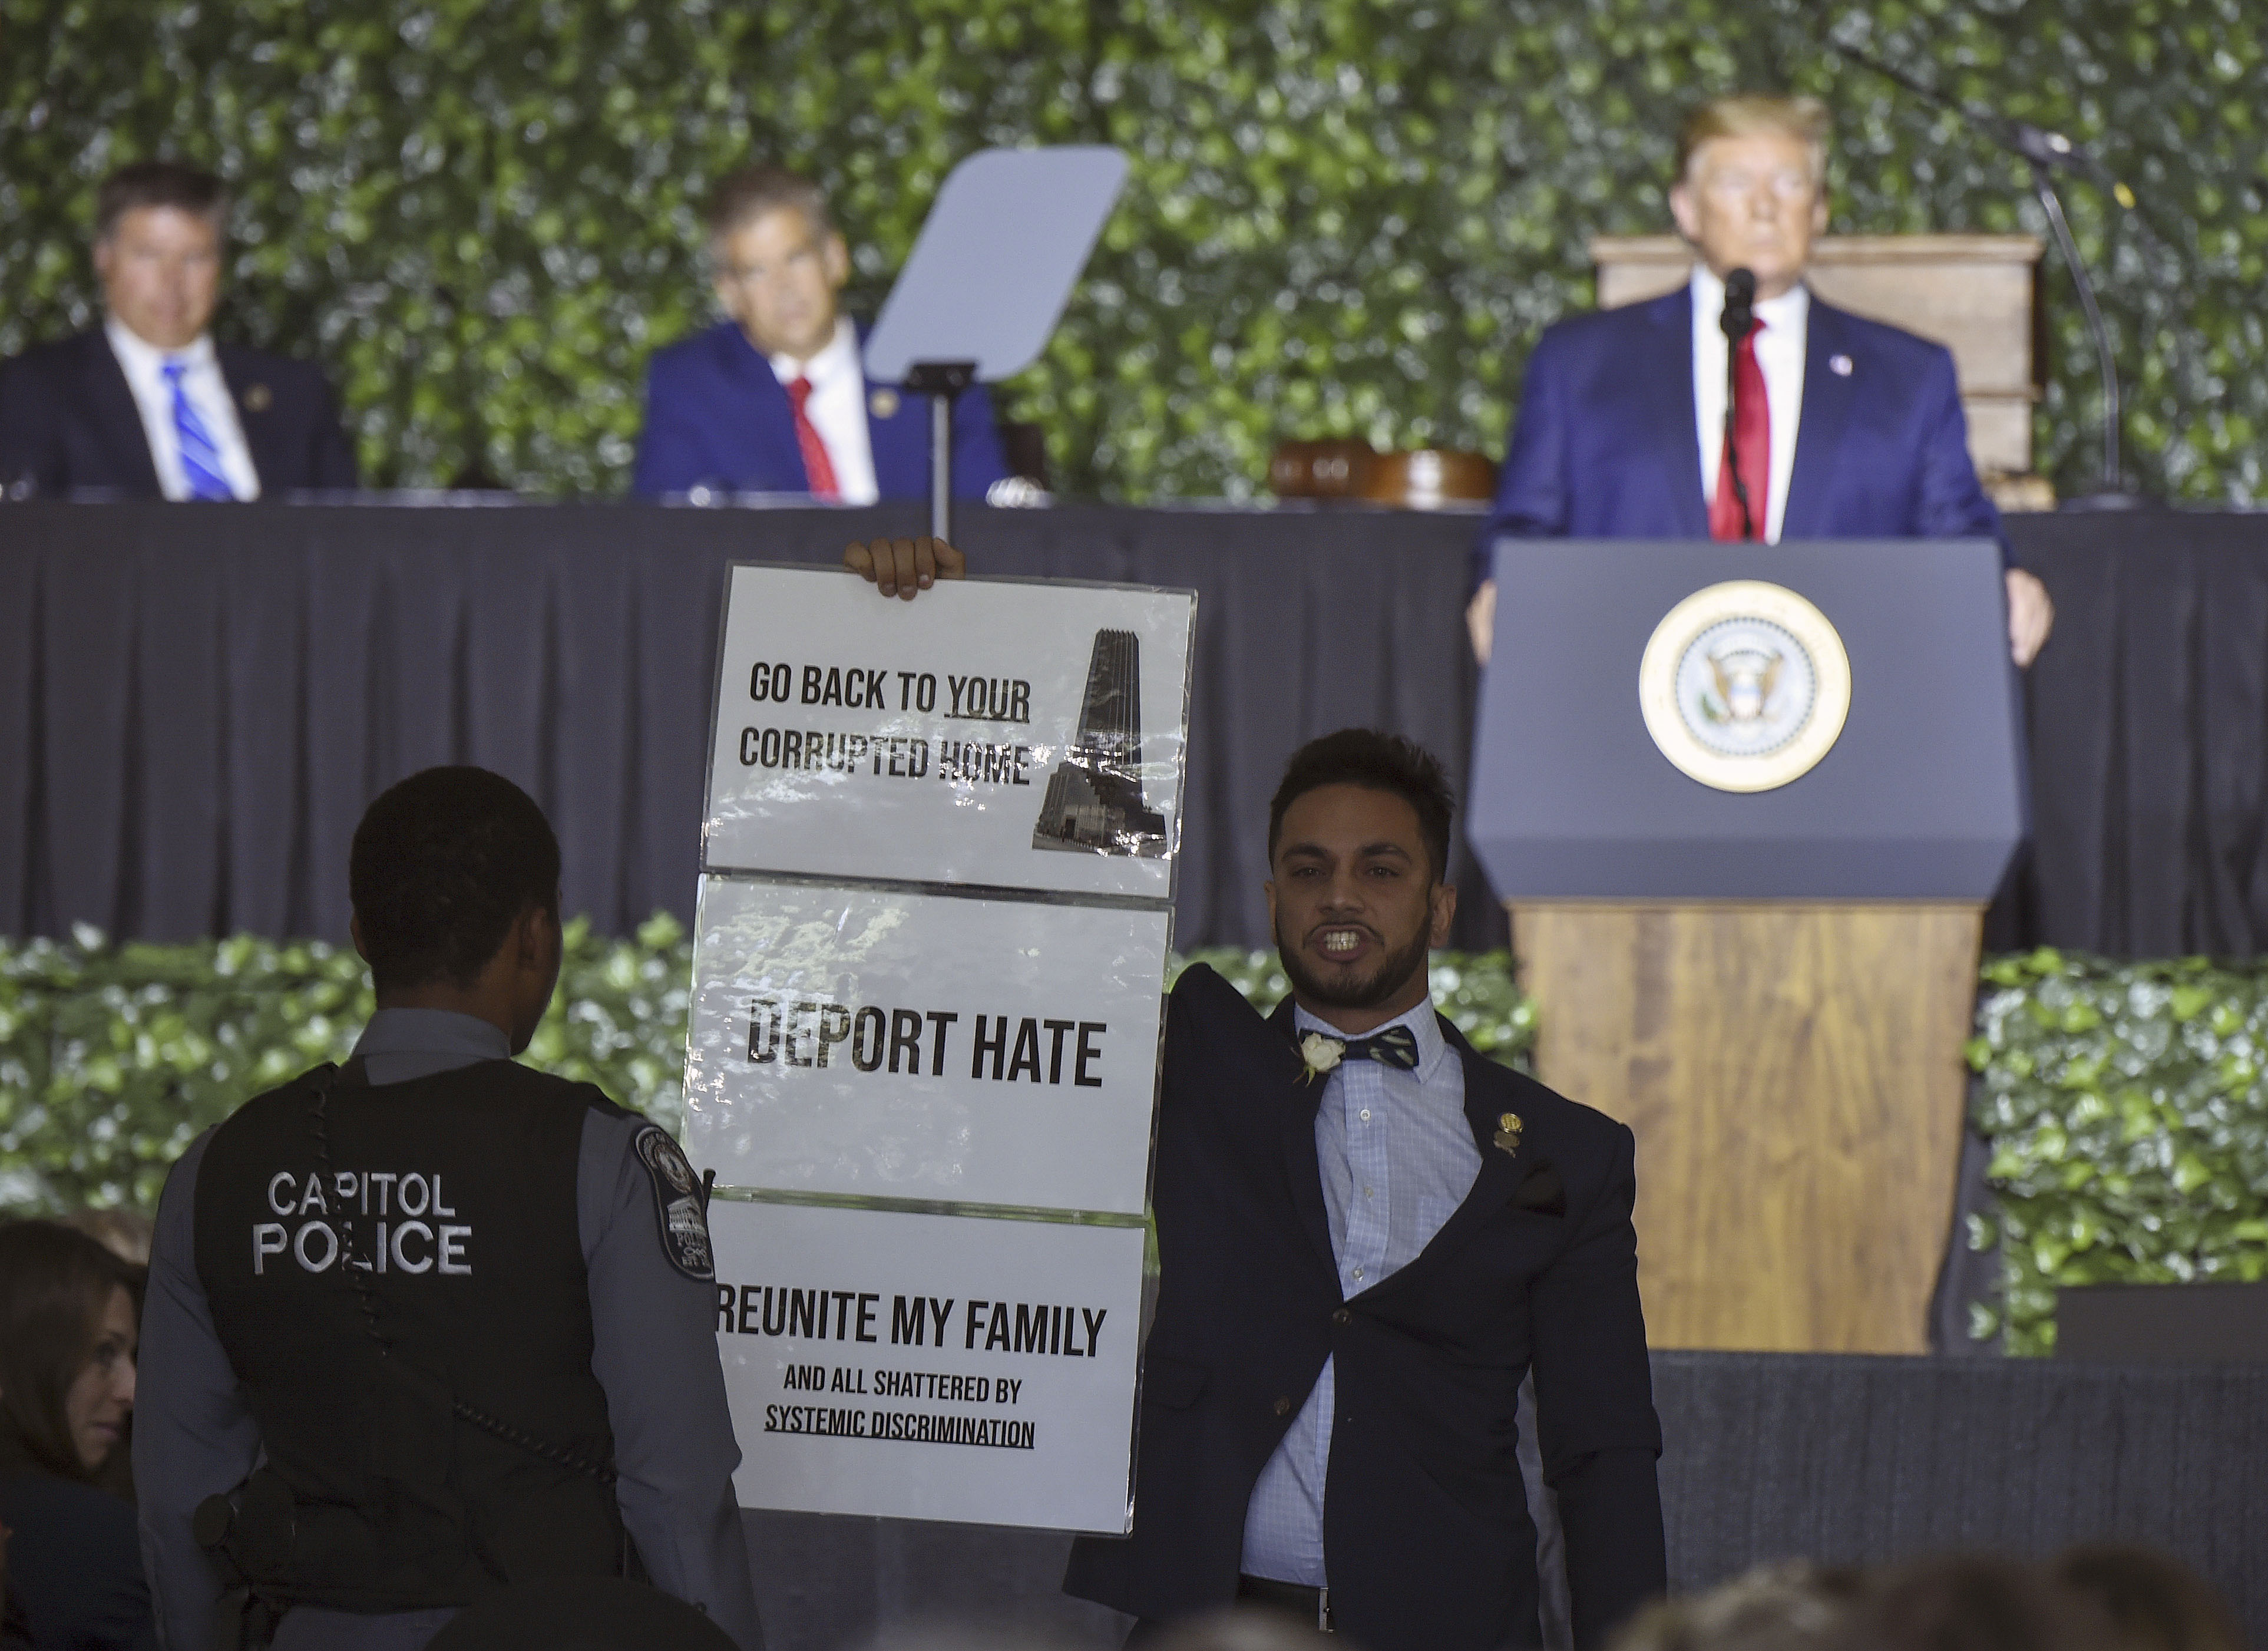 Send him back: Angry reactions to Trump at Virginia event honoring foundations of democracy